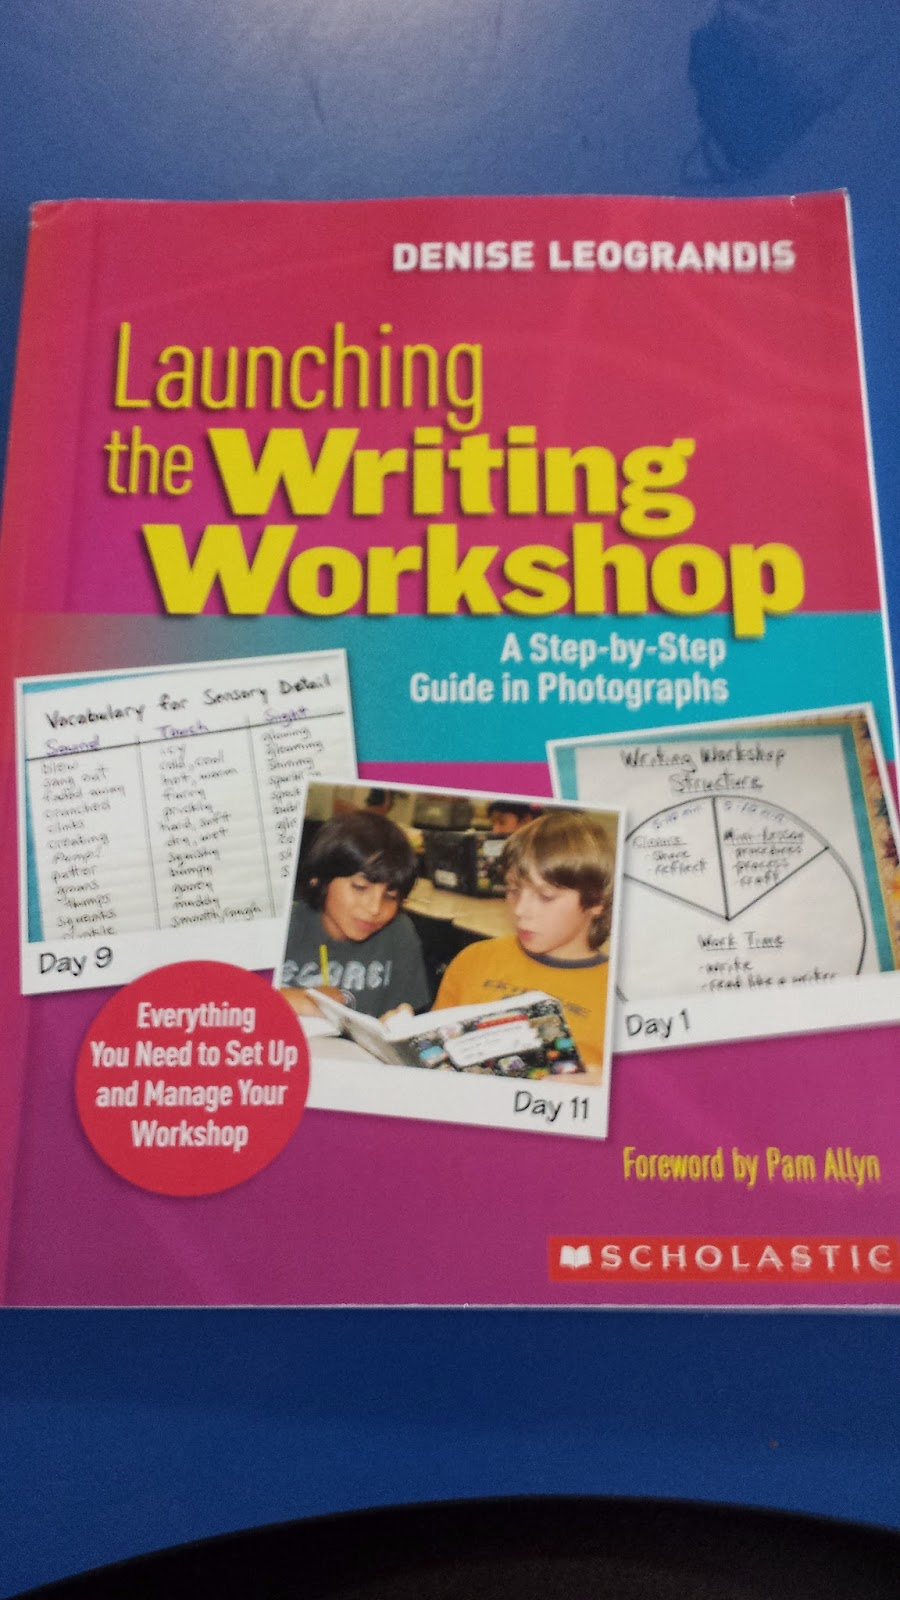 http://www.amazon.com/Launching-Writing-Workshop-Step---Step/dp/0545021219/ref=sr_1_1?ie=UTF8&qid=1401830738&sr=8-1&keywords=launching+the+writing+workshop